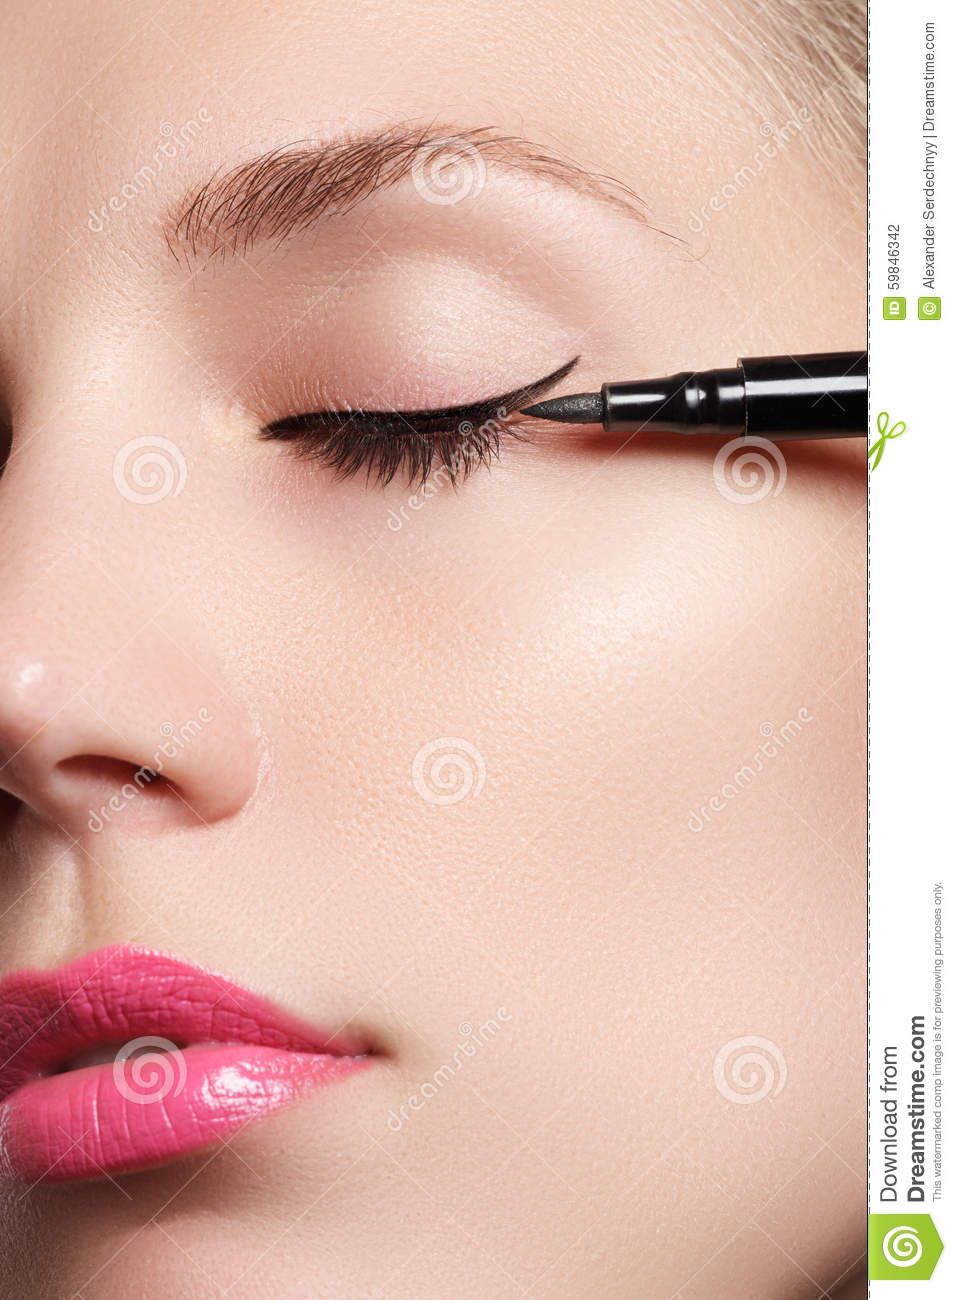 Beautiful woman with bright make up eye with black liner makeup. Fashion arrow shape. Chic evening make-up. Makeup beauty wit